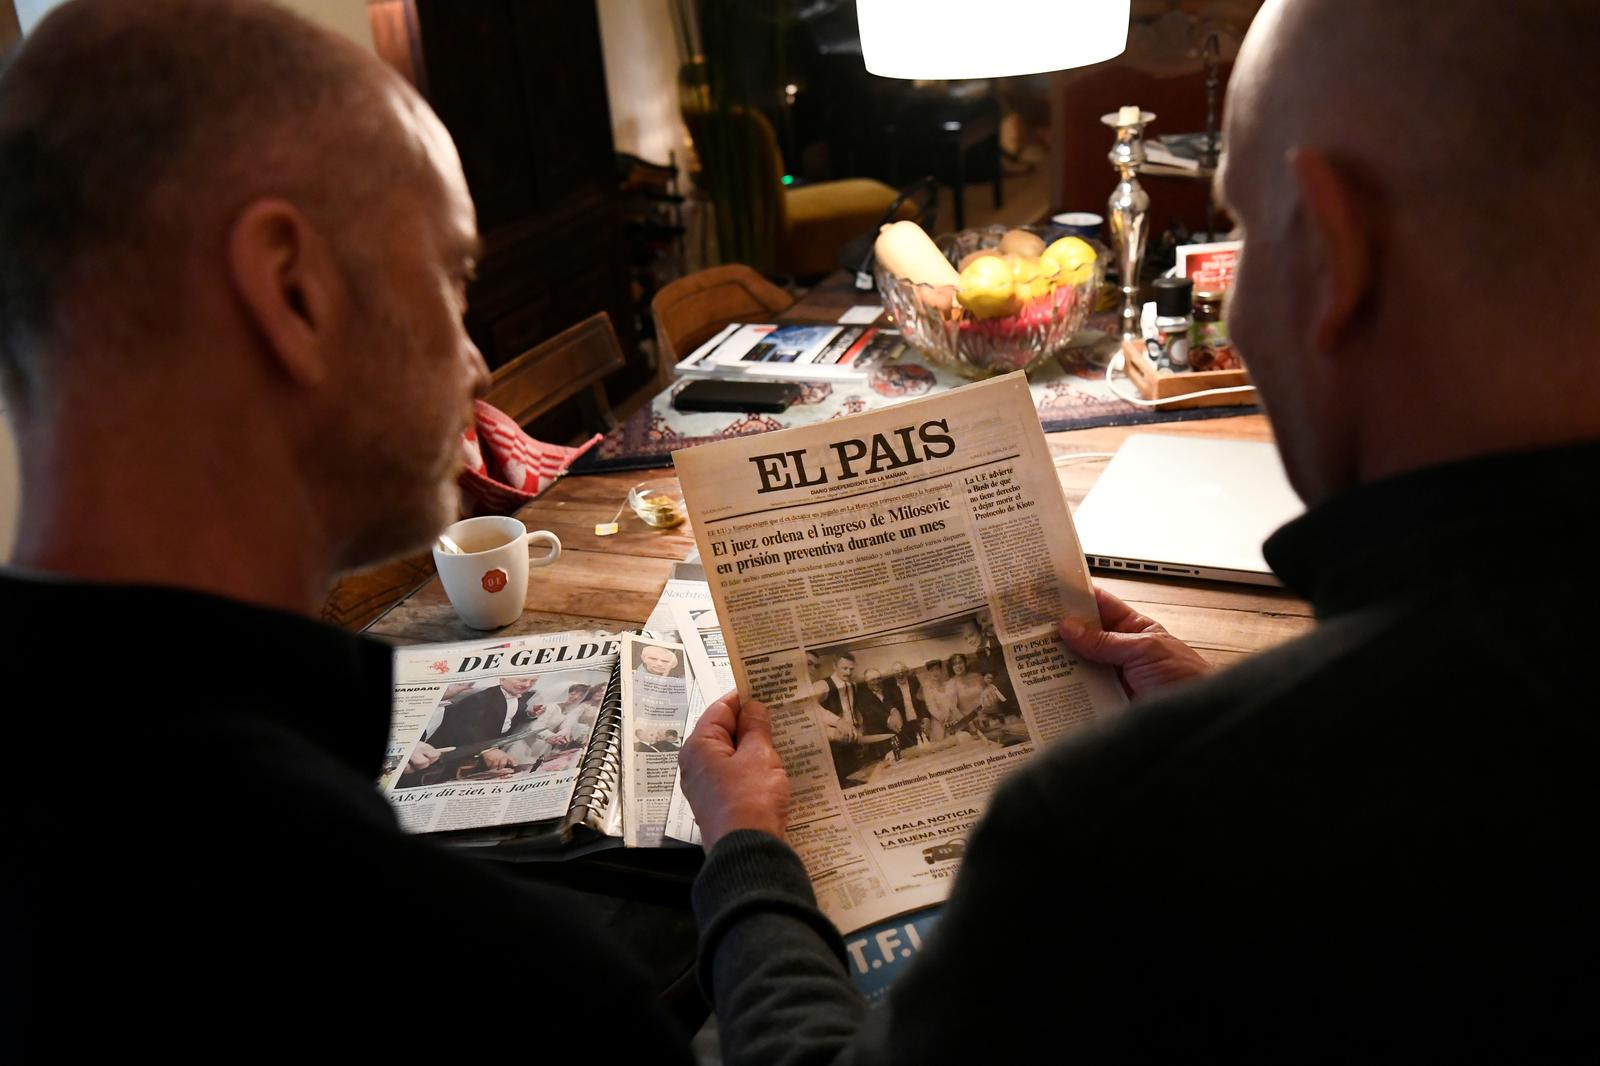 Dutch couple Gert Kasteel and Dolf Pasker look at newspaper articles that featured them on their wedding 20 years ago in the world's first legally-recognised same-sex wedding and on the state of LGBT rights two decades on, in Weesp, Netherlands March 31, 2021. Picture taken March 31, 2021. Photo: Reuters